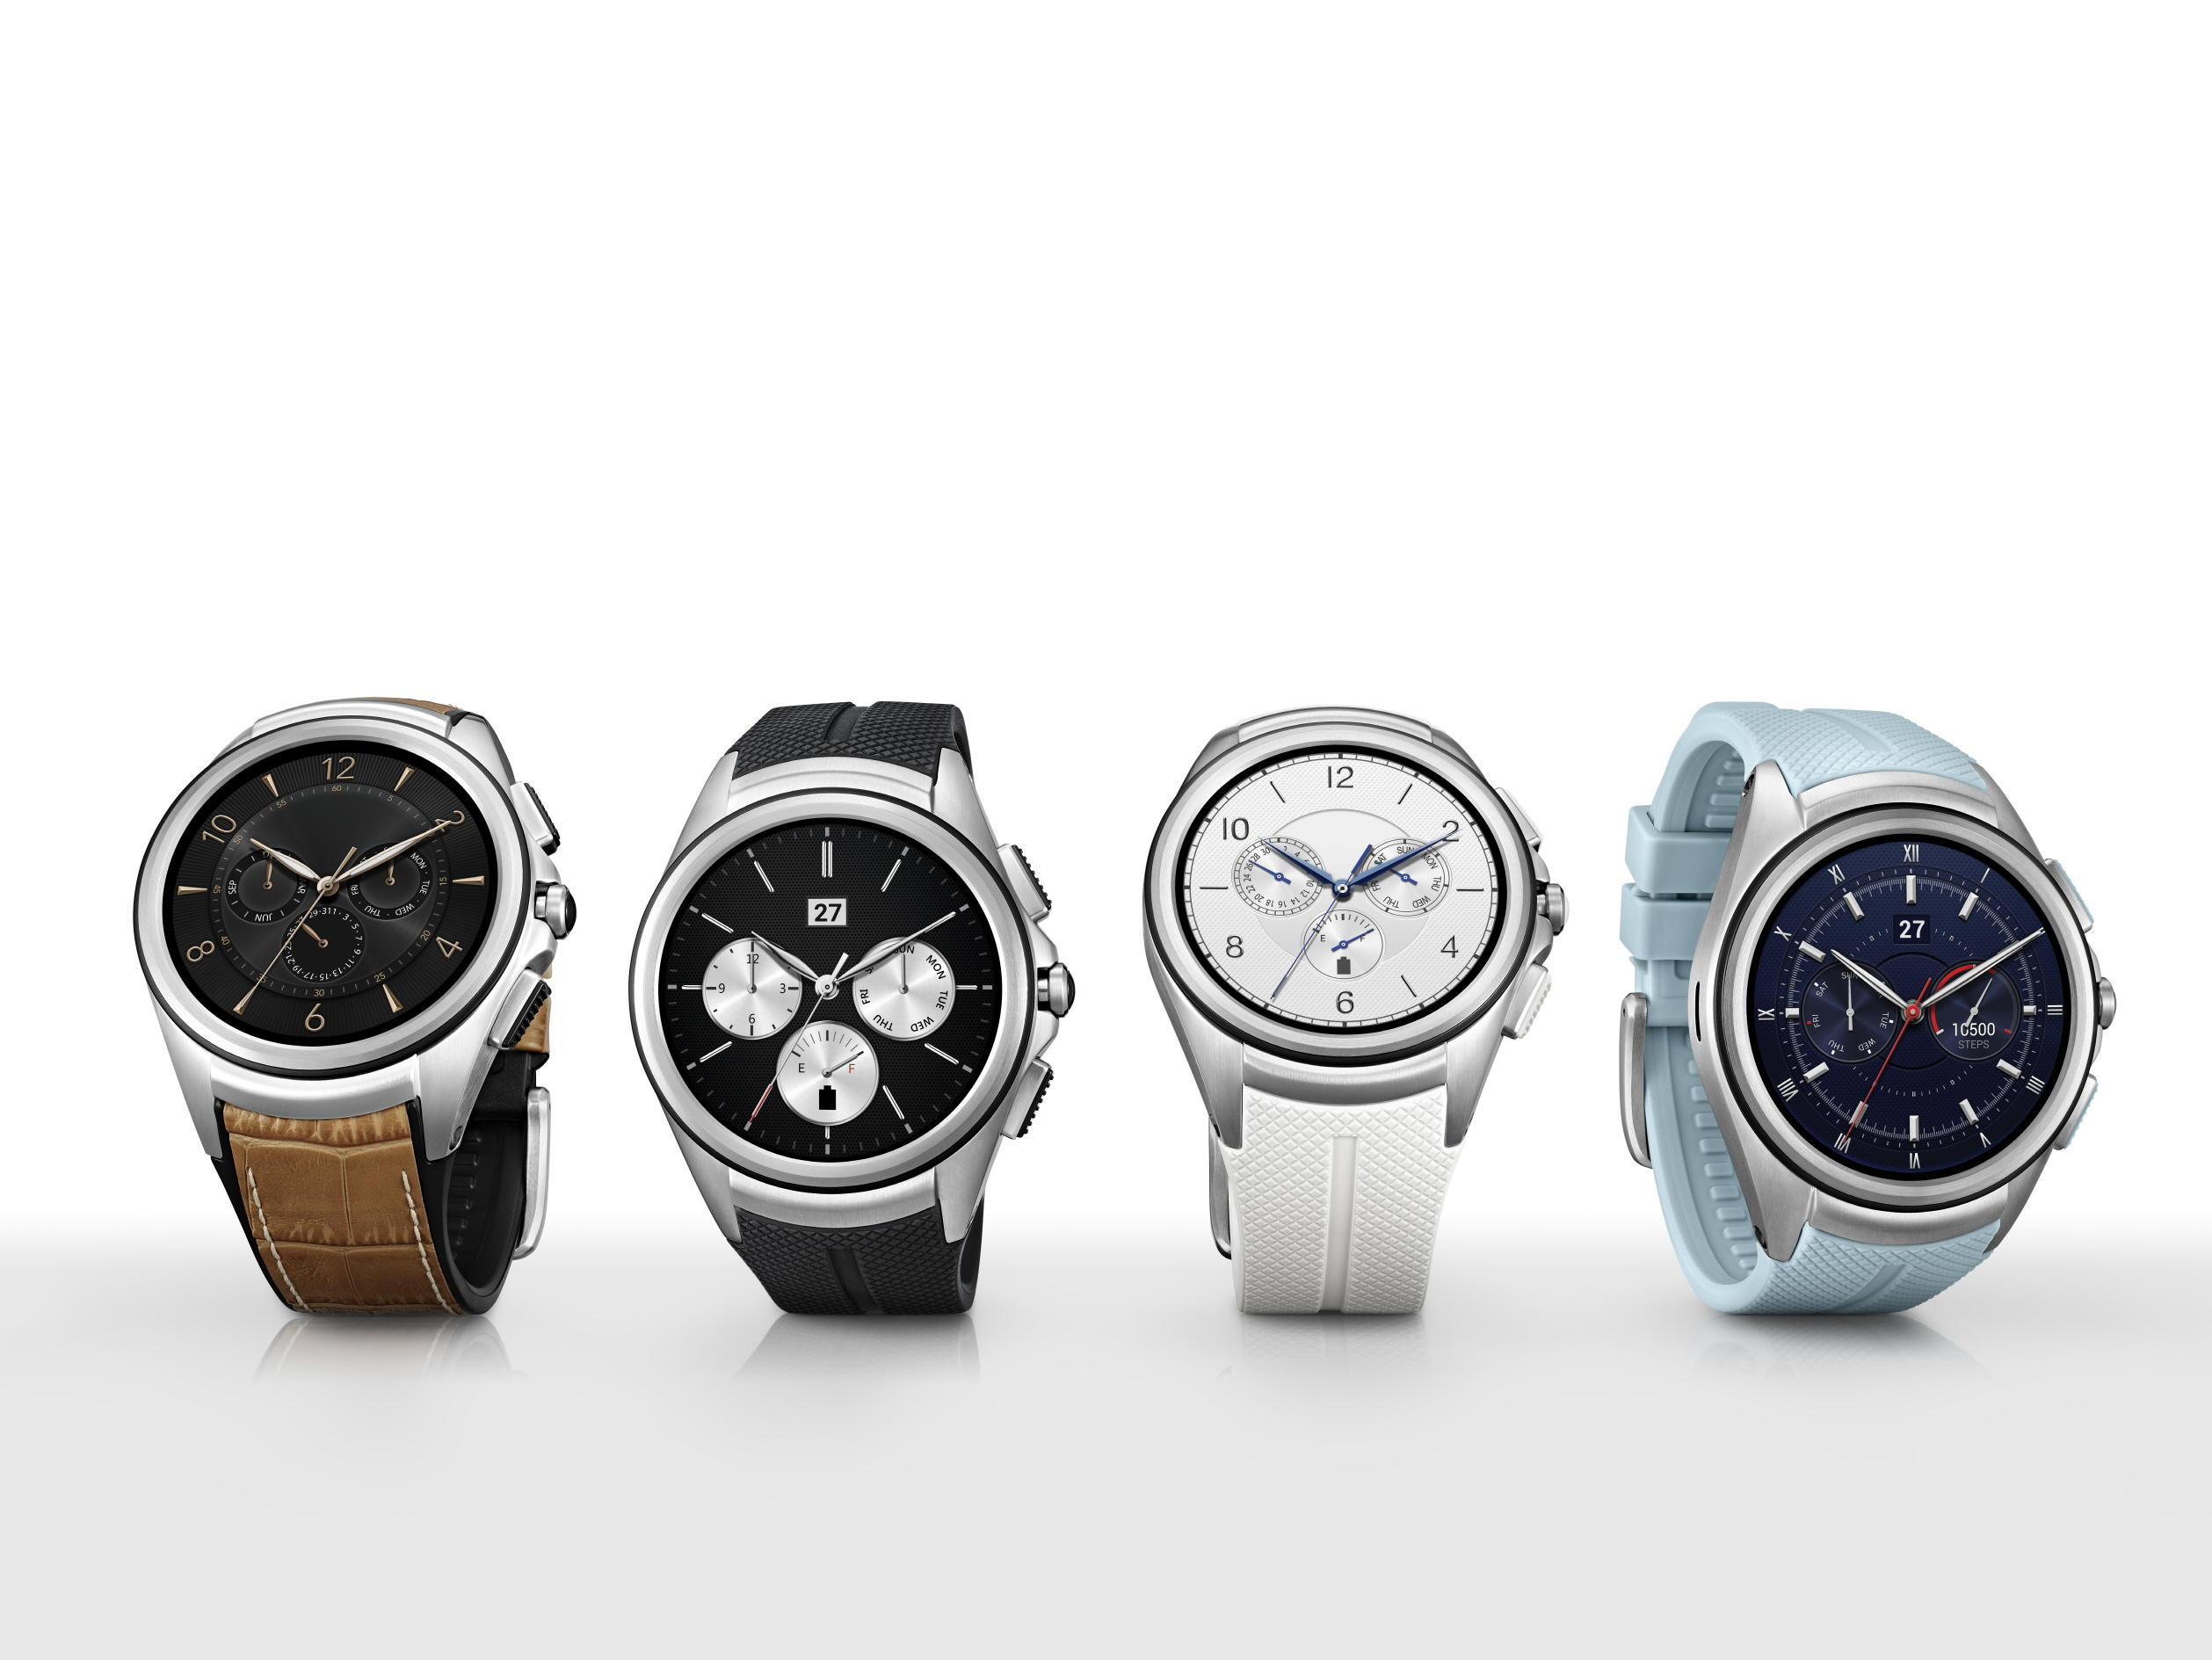 lg-watch-urbane-2015-vs-samsung-gear-s2